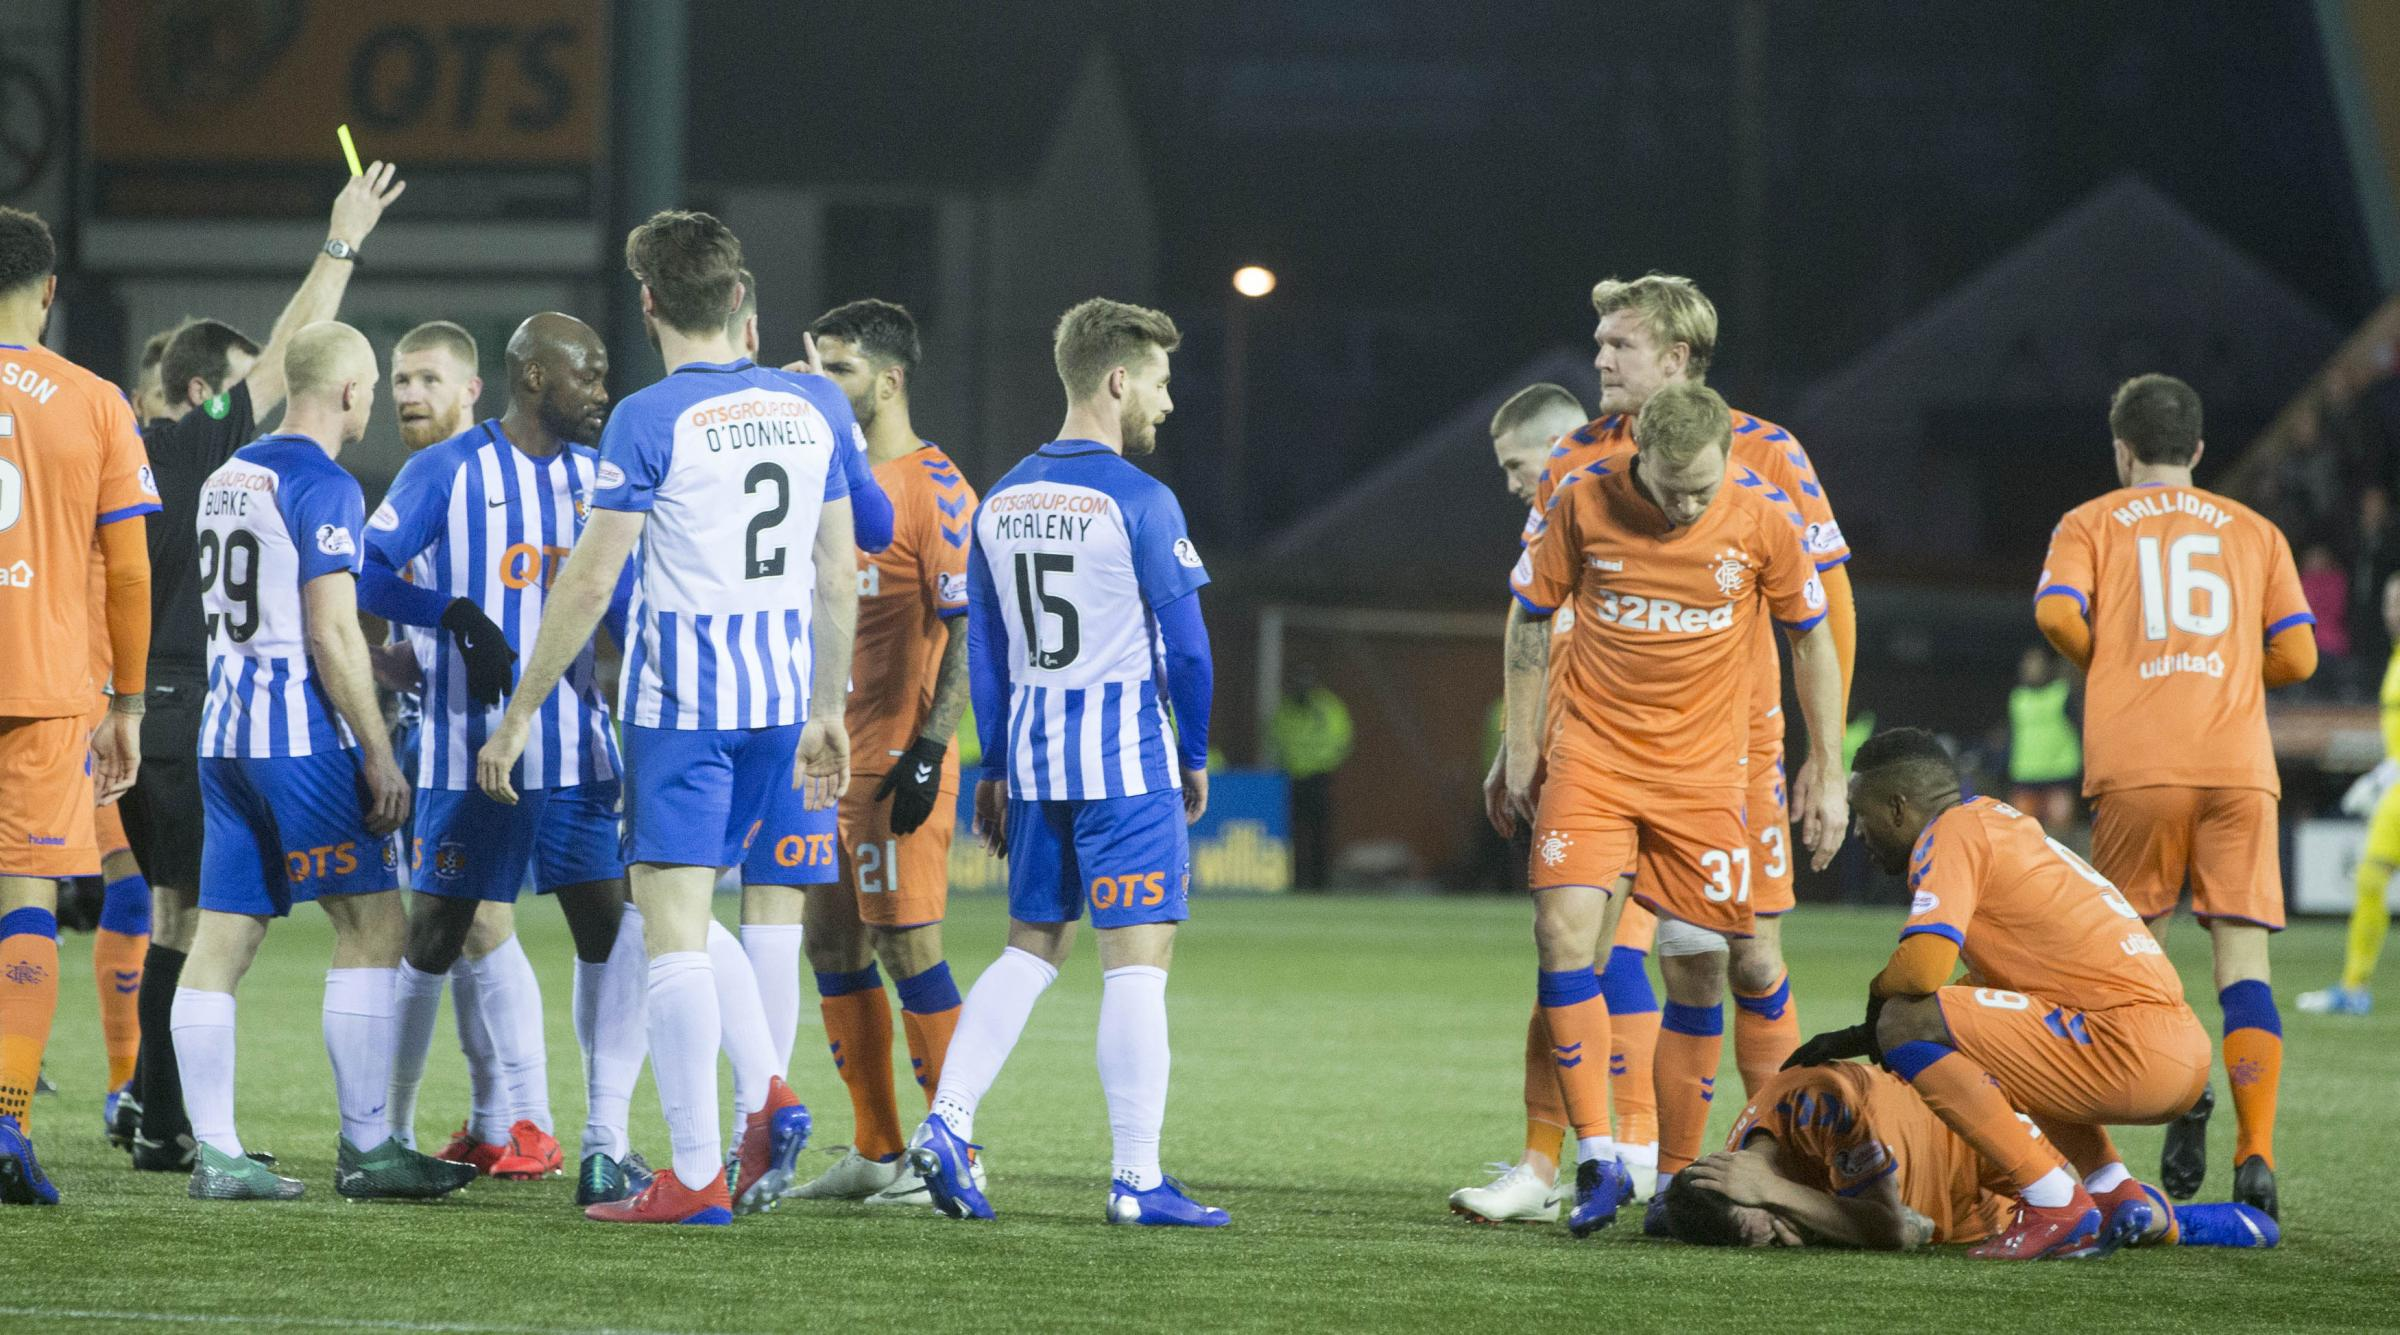 Kilmarnock' s Alan Power clashes with Rangers' Ryan Jack in first half gets booked during the William Hill Scottish Cup fifth round match at Rugby Park